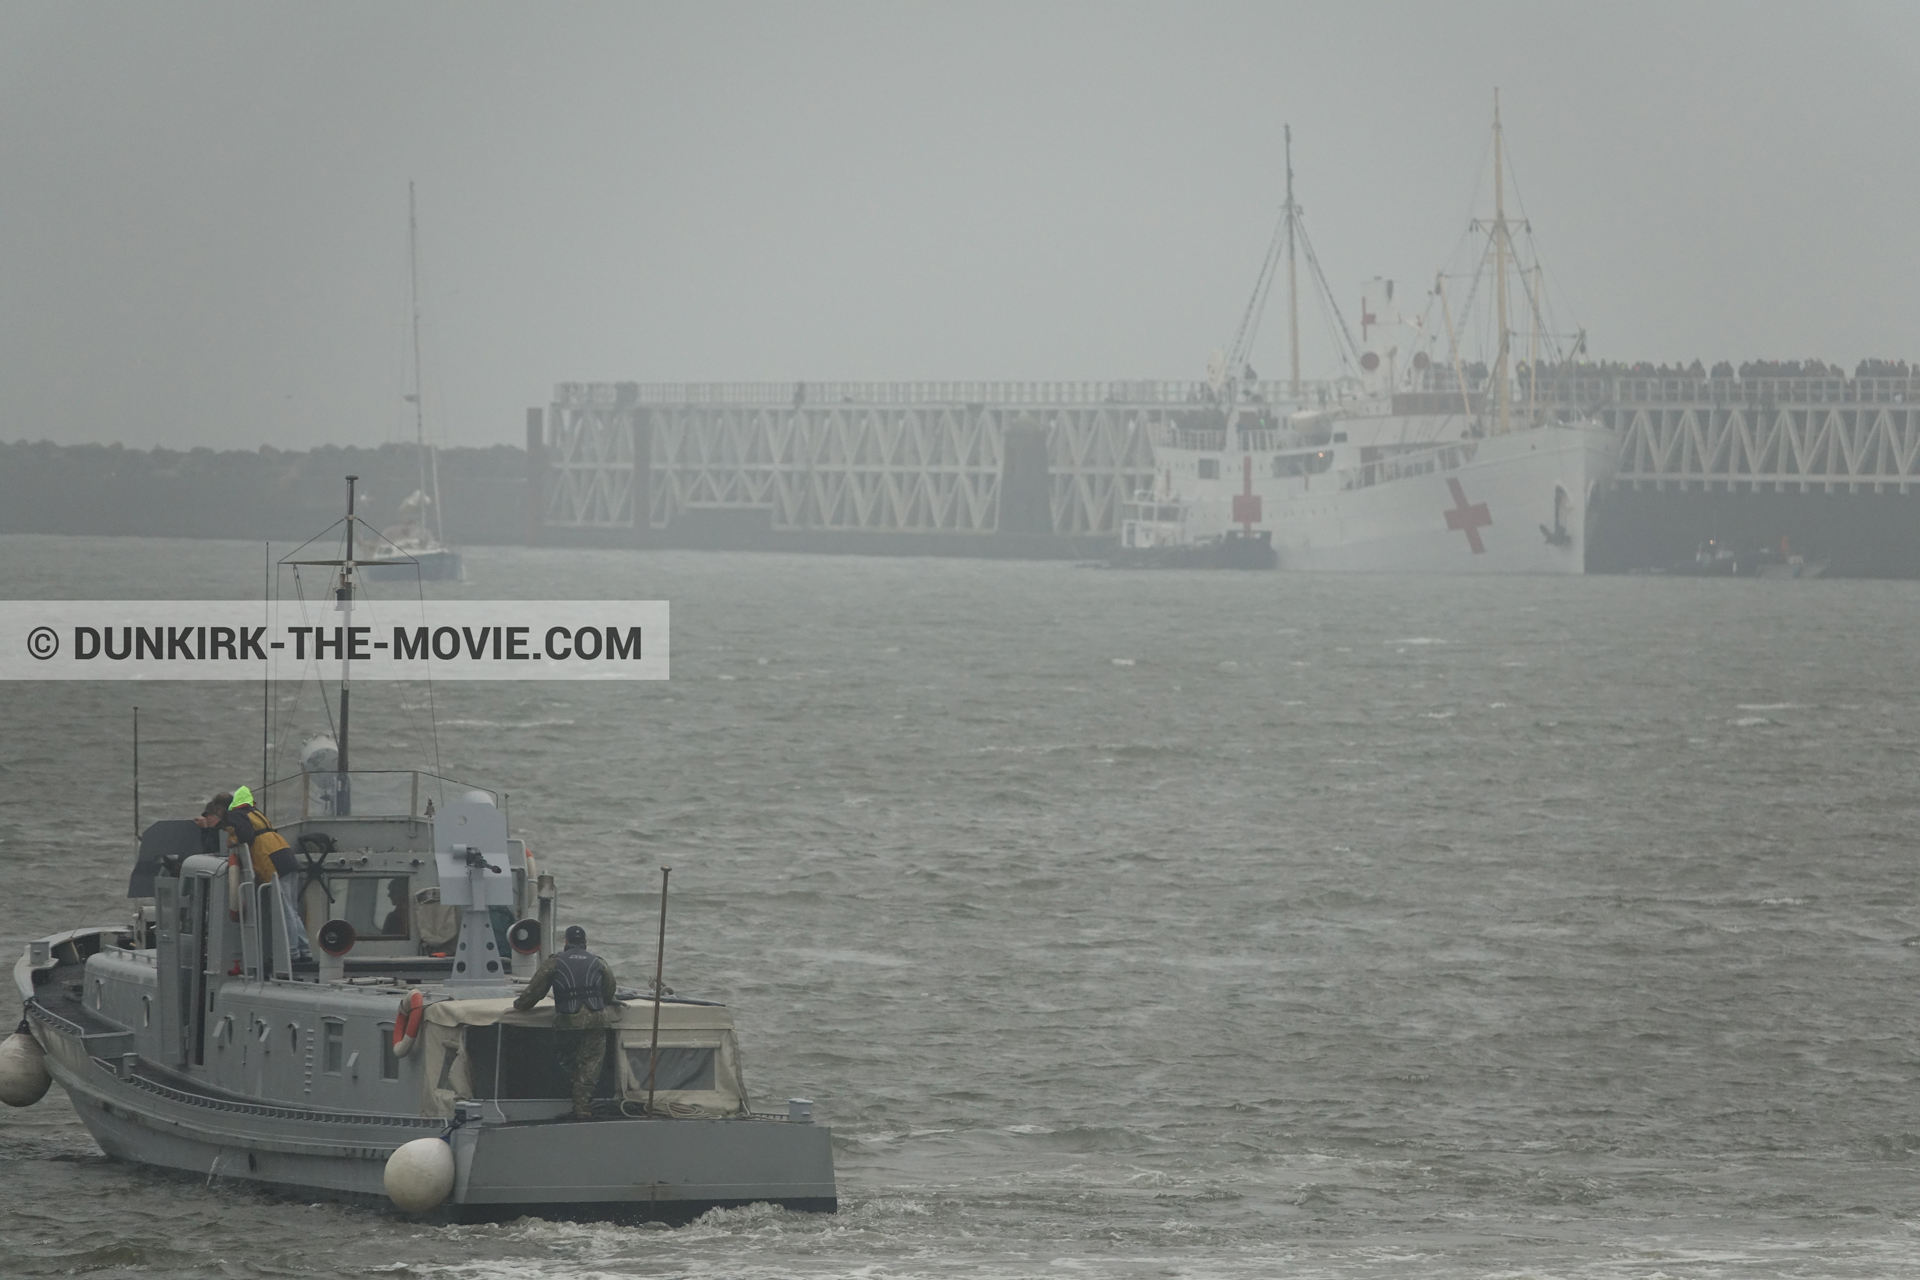 Picture with boat, grey sky, EST pier, M/S Rogaland, PR 22,  from behind the scene of the Dunkirk movie by Nolan